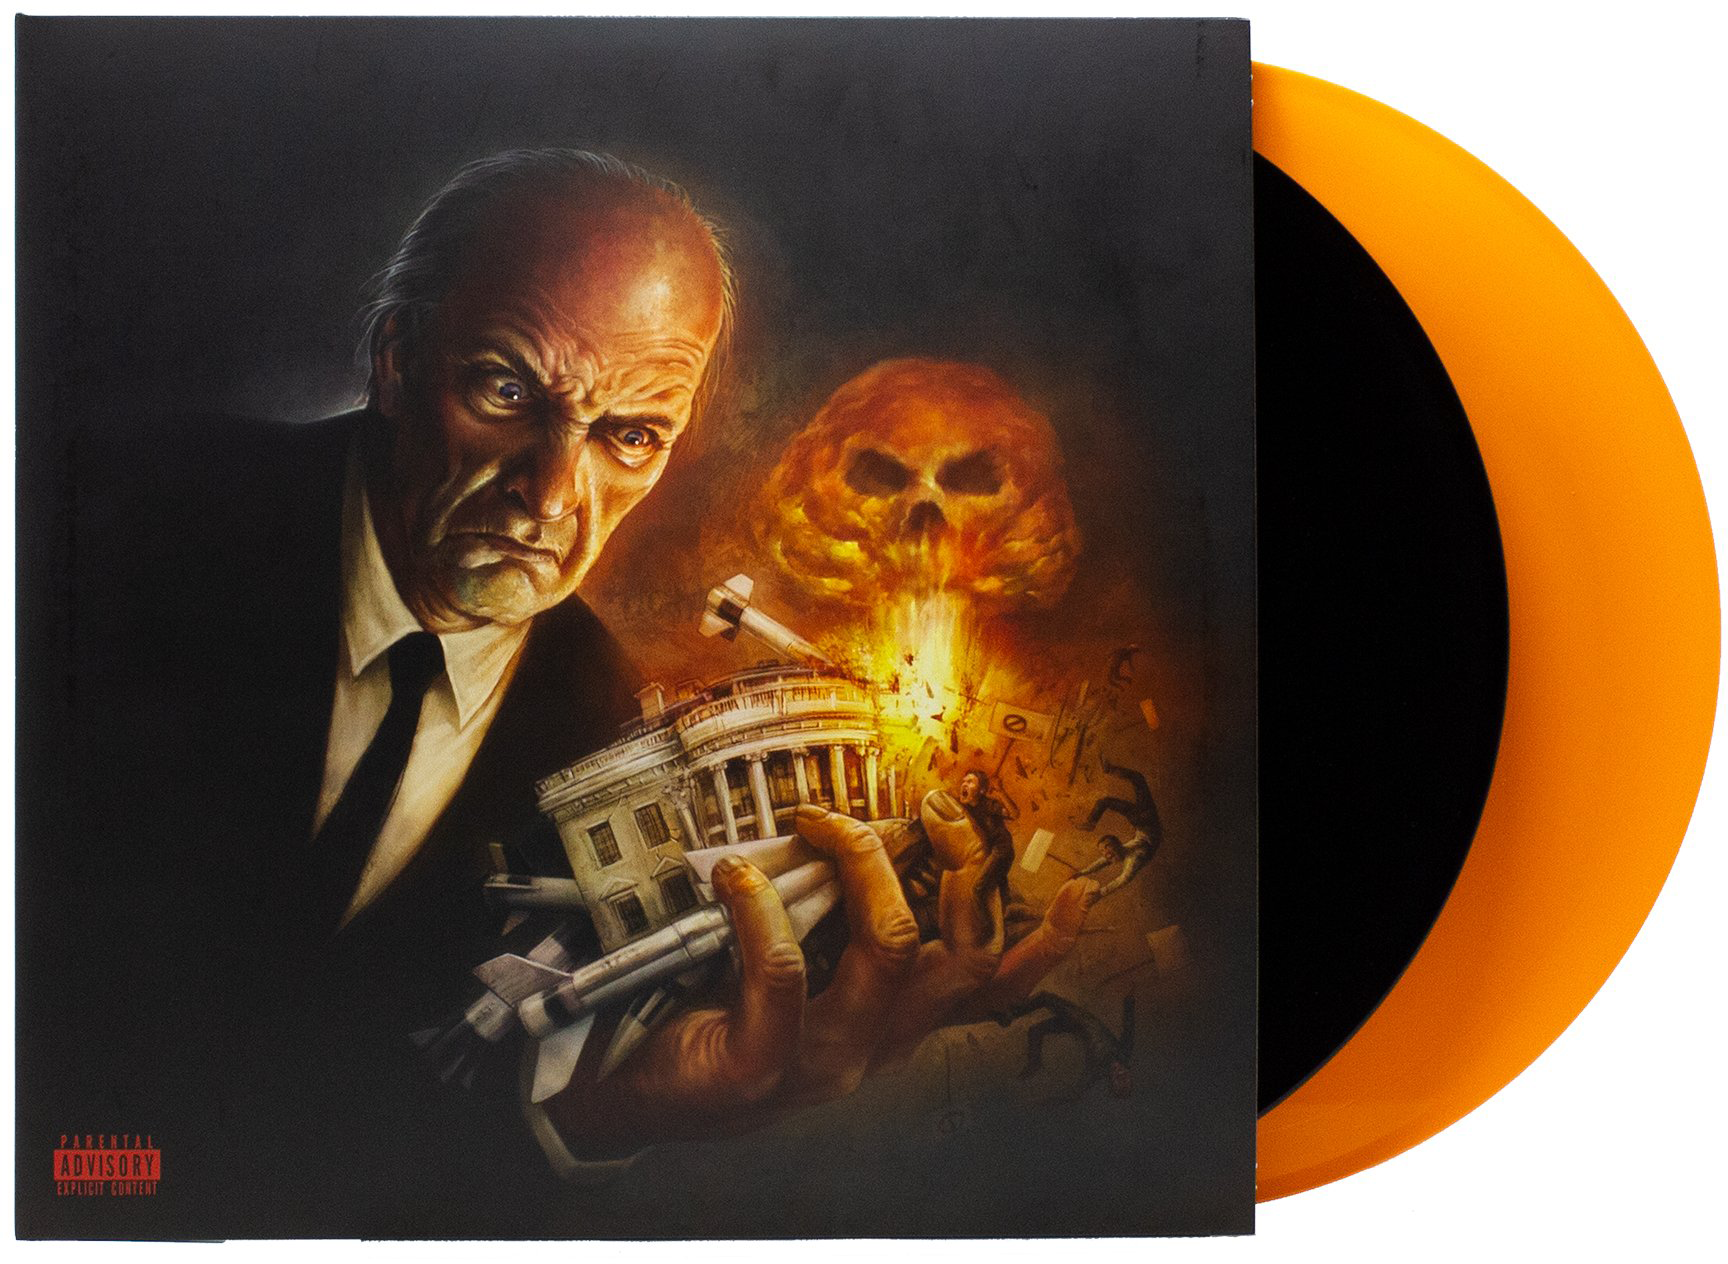 The Pain Collector 2LP